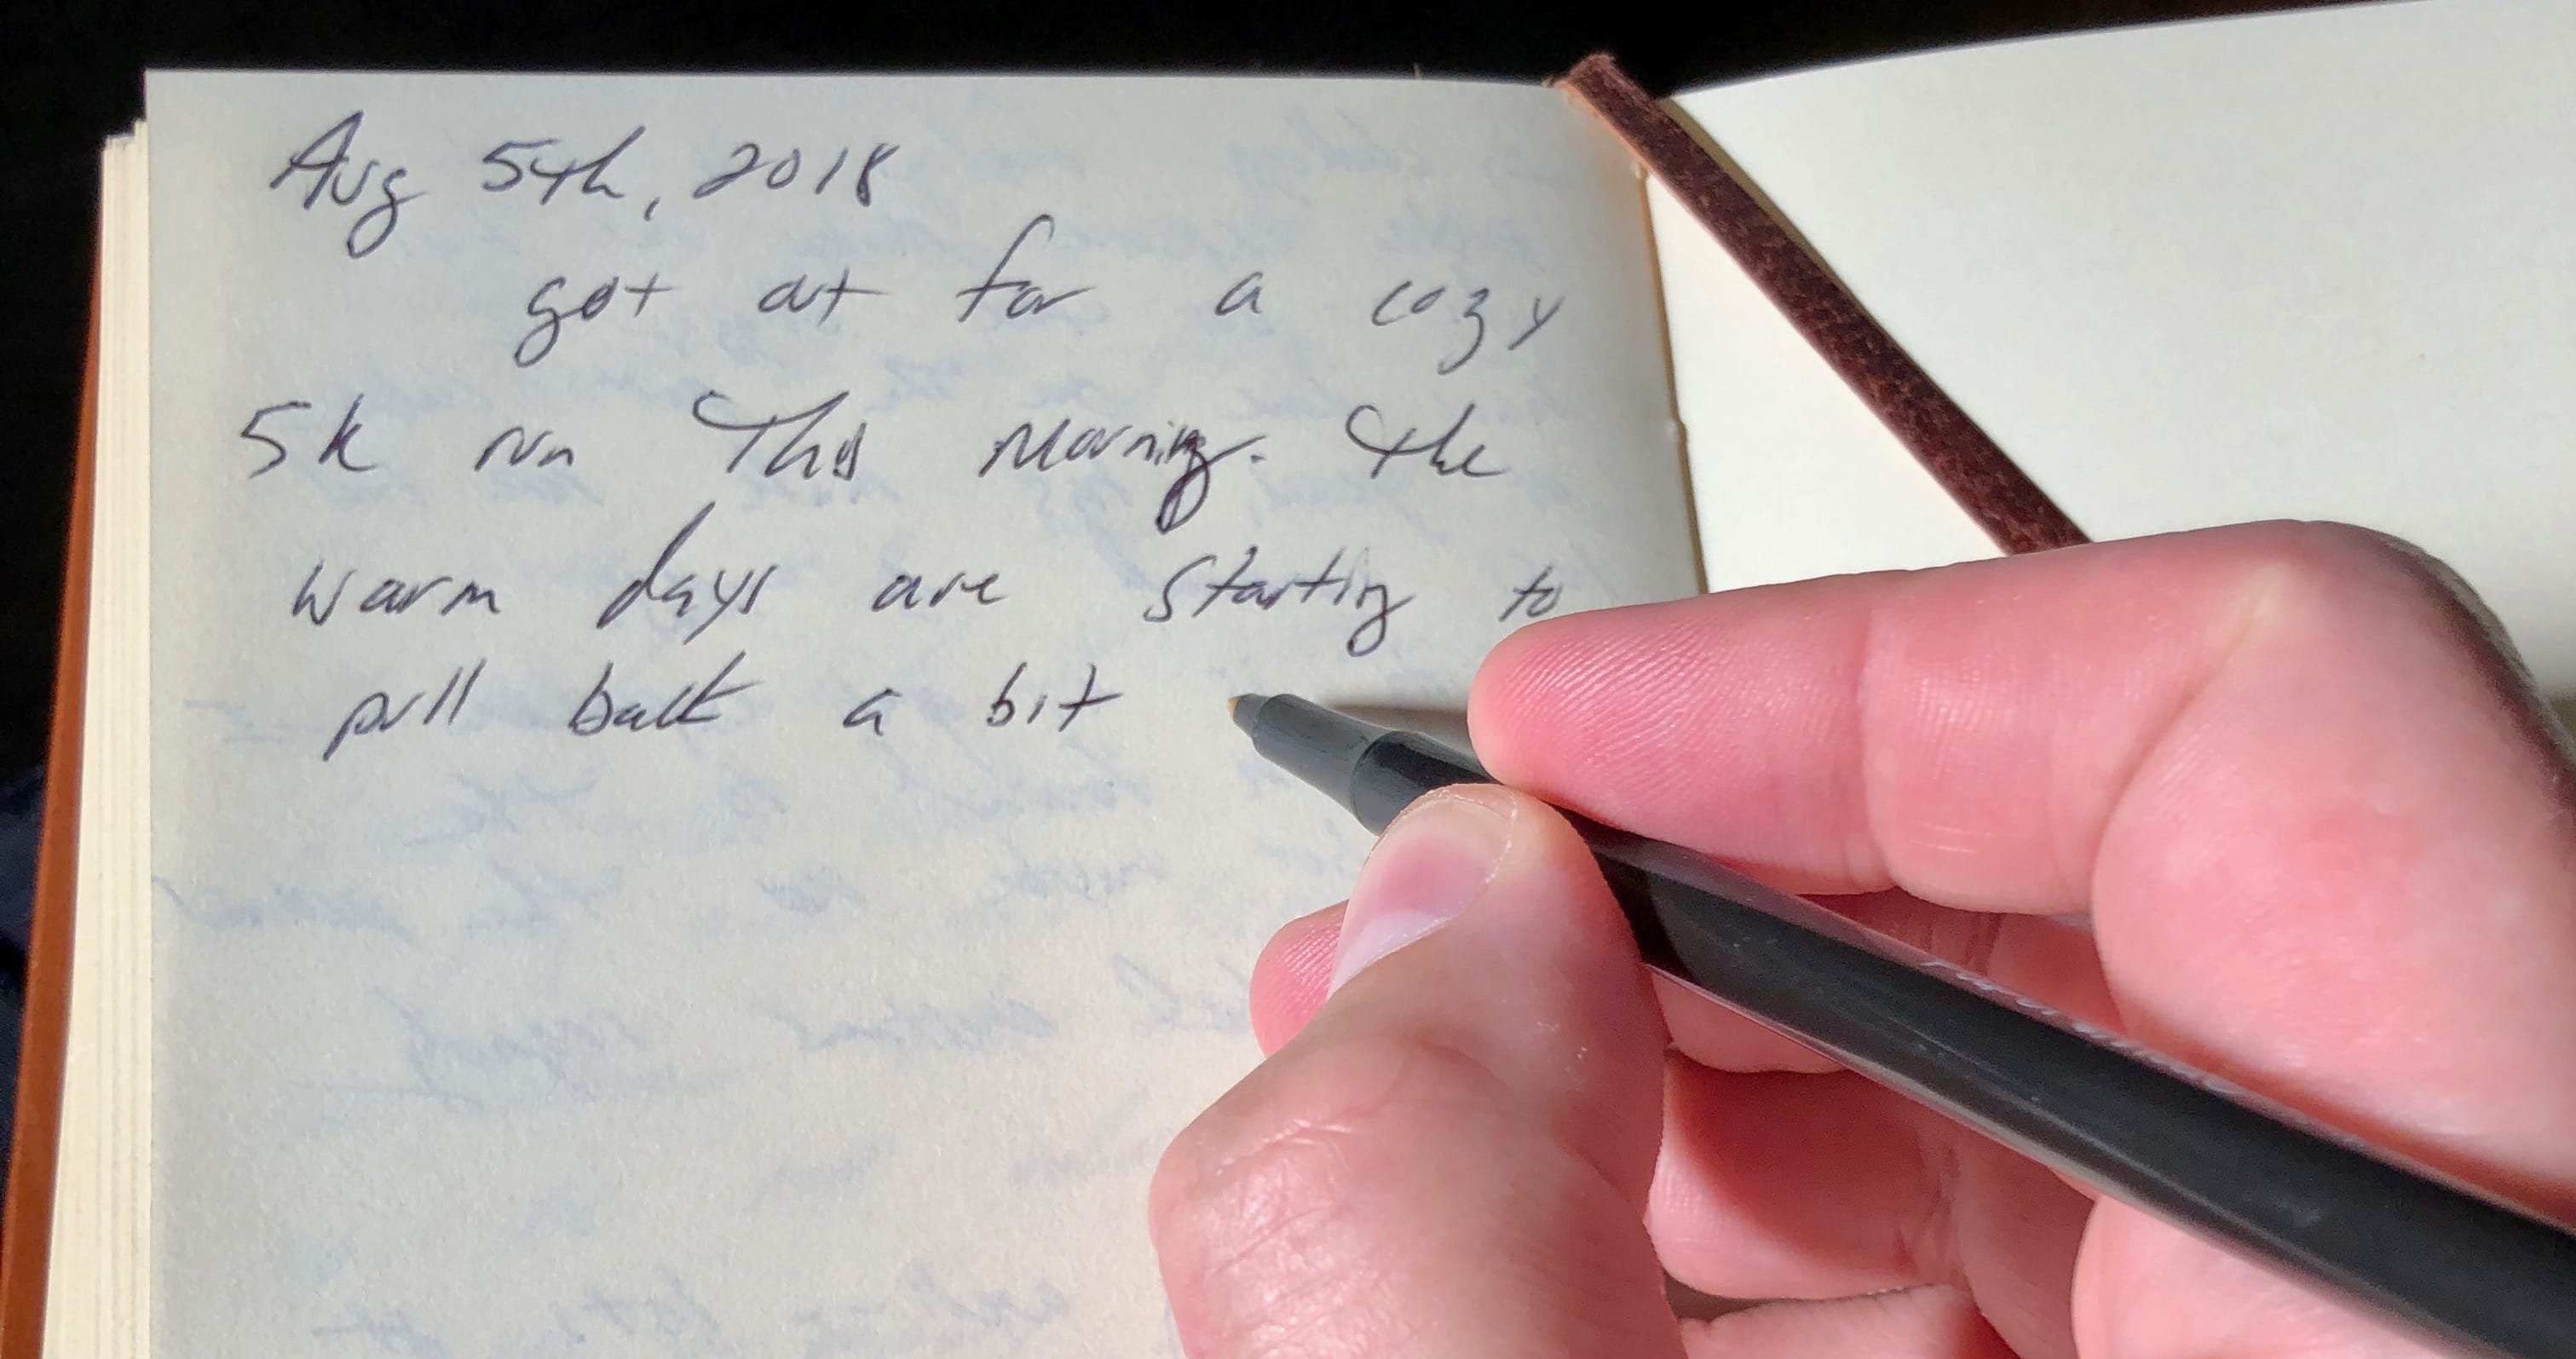 Keeping a journal pen and paper